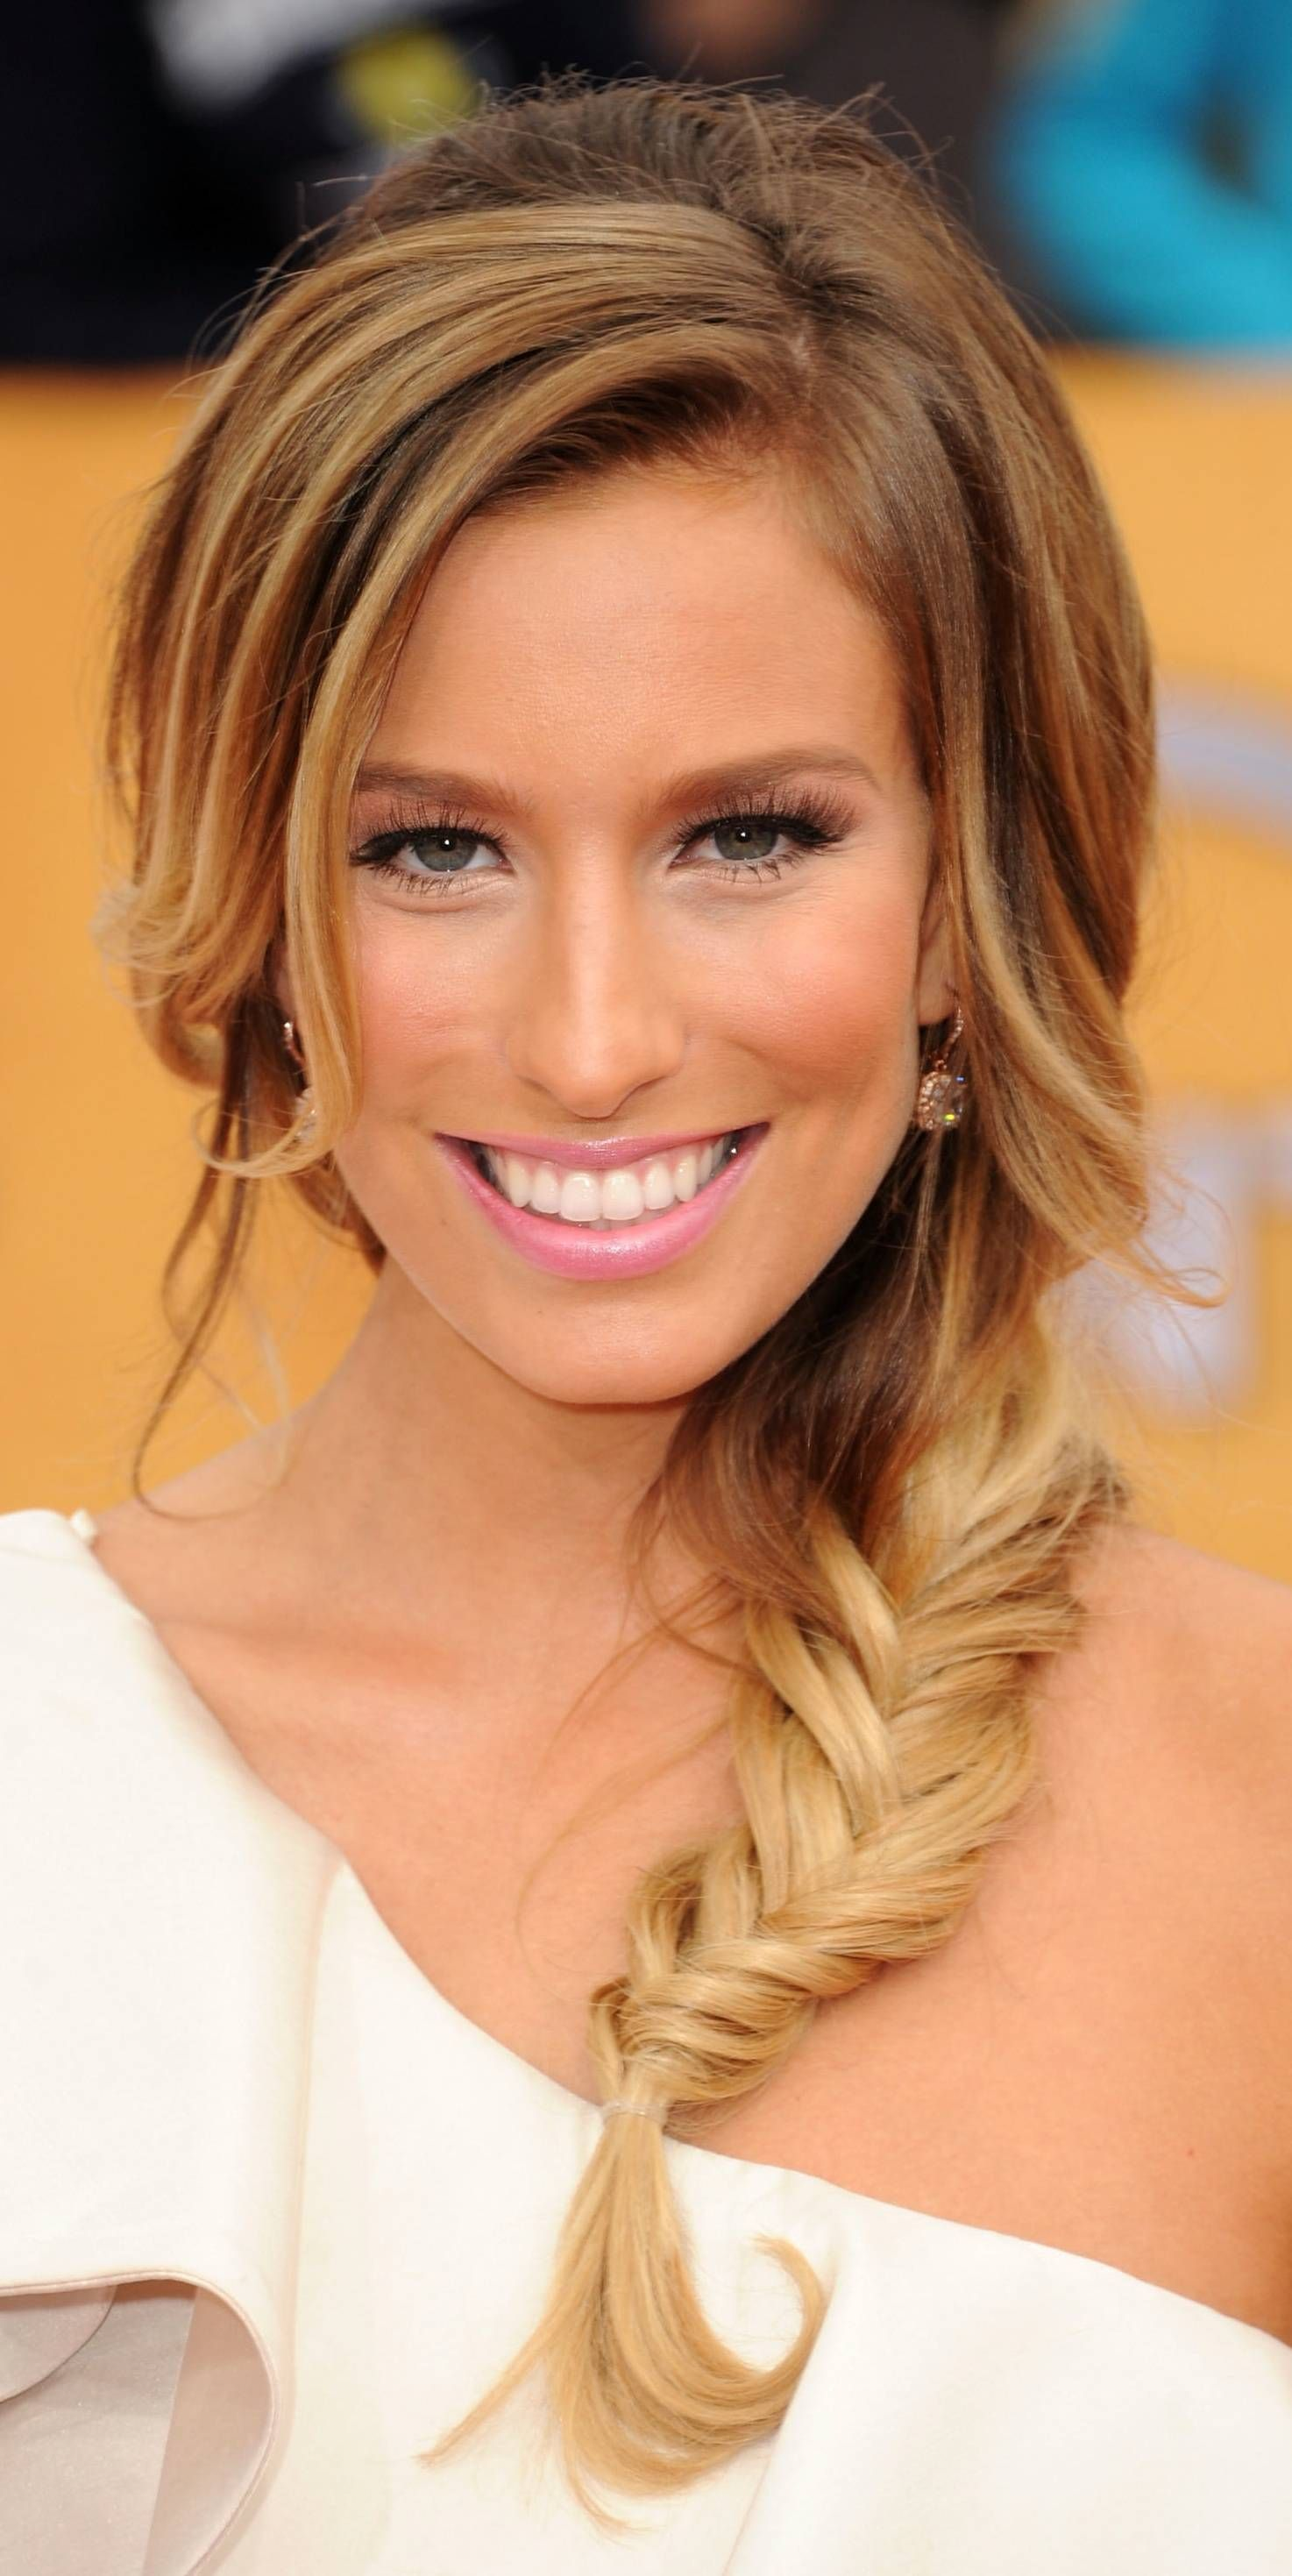 Braids hairstyles featuring braids fishtail fishtail braids and